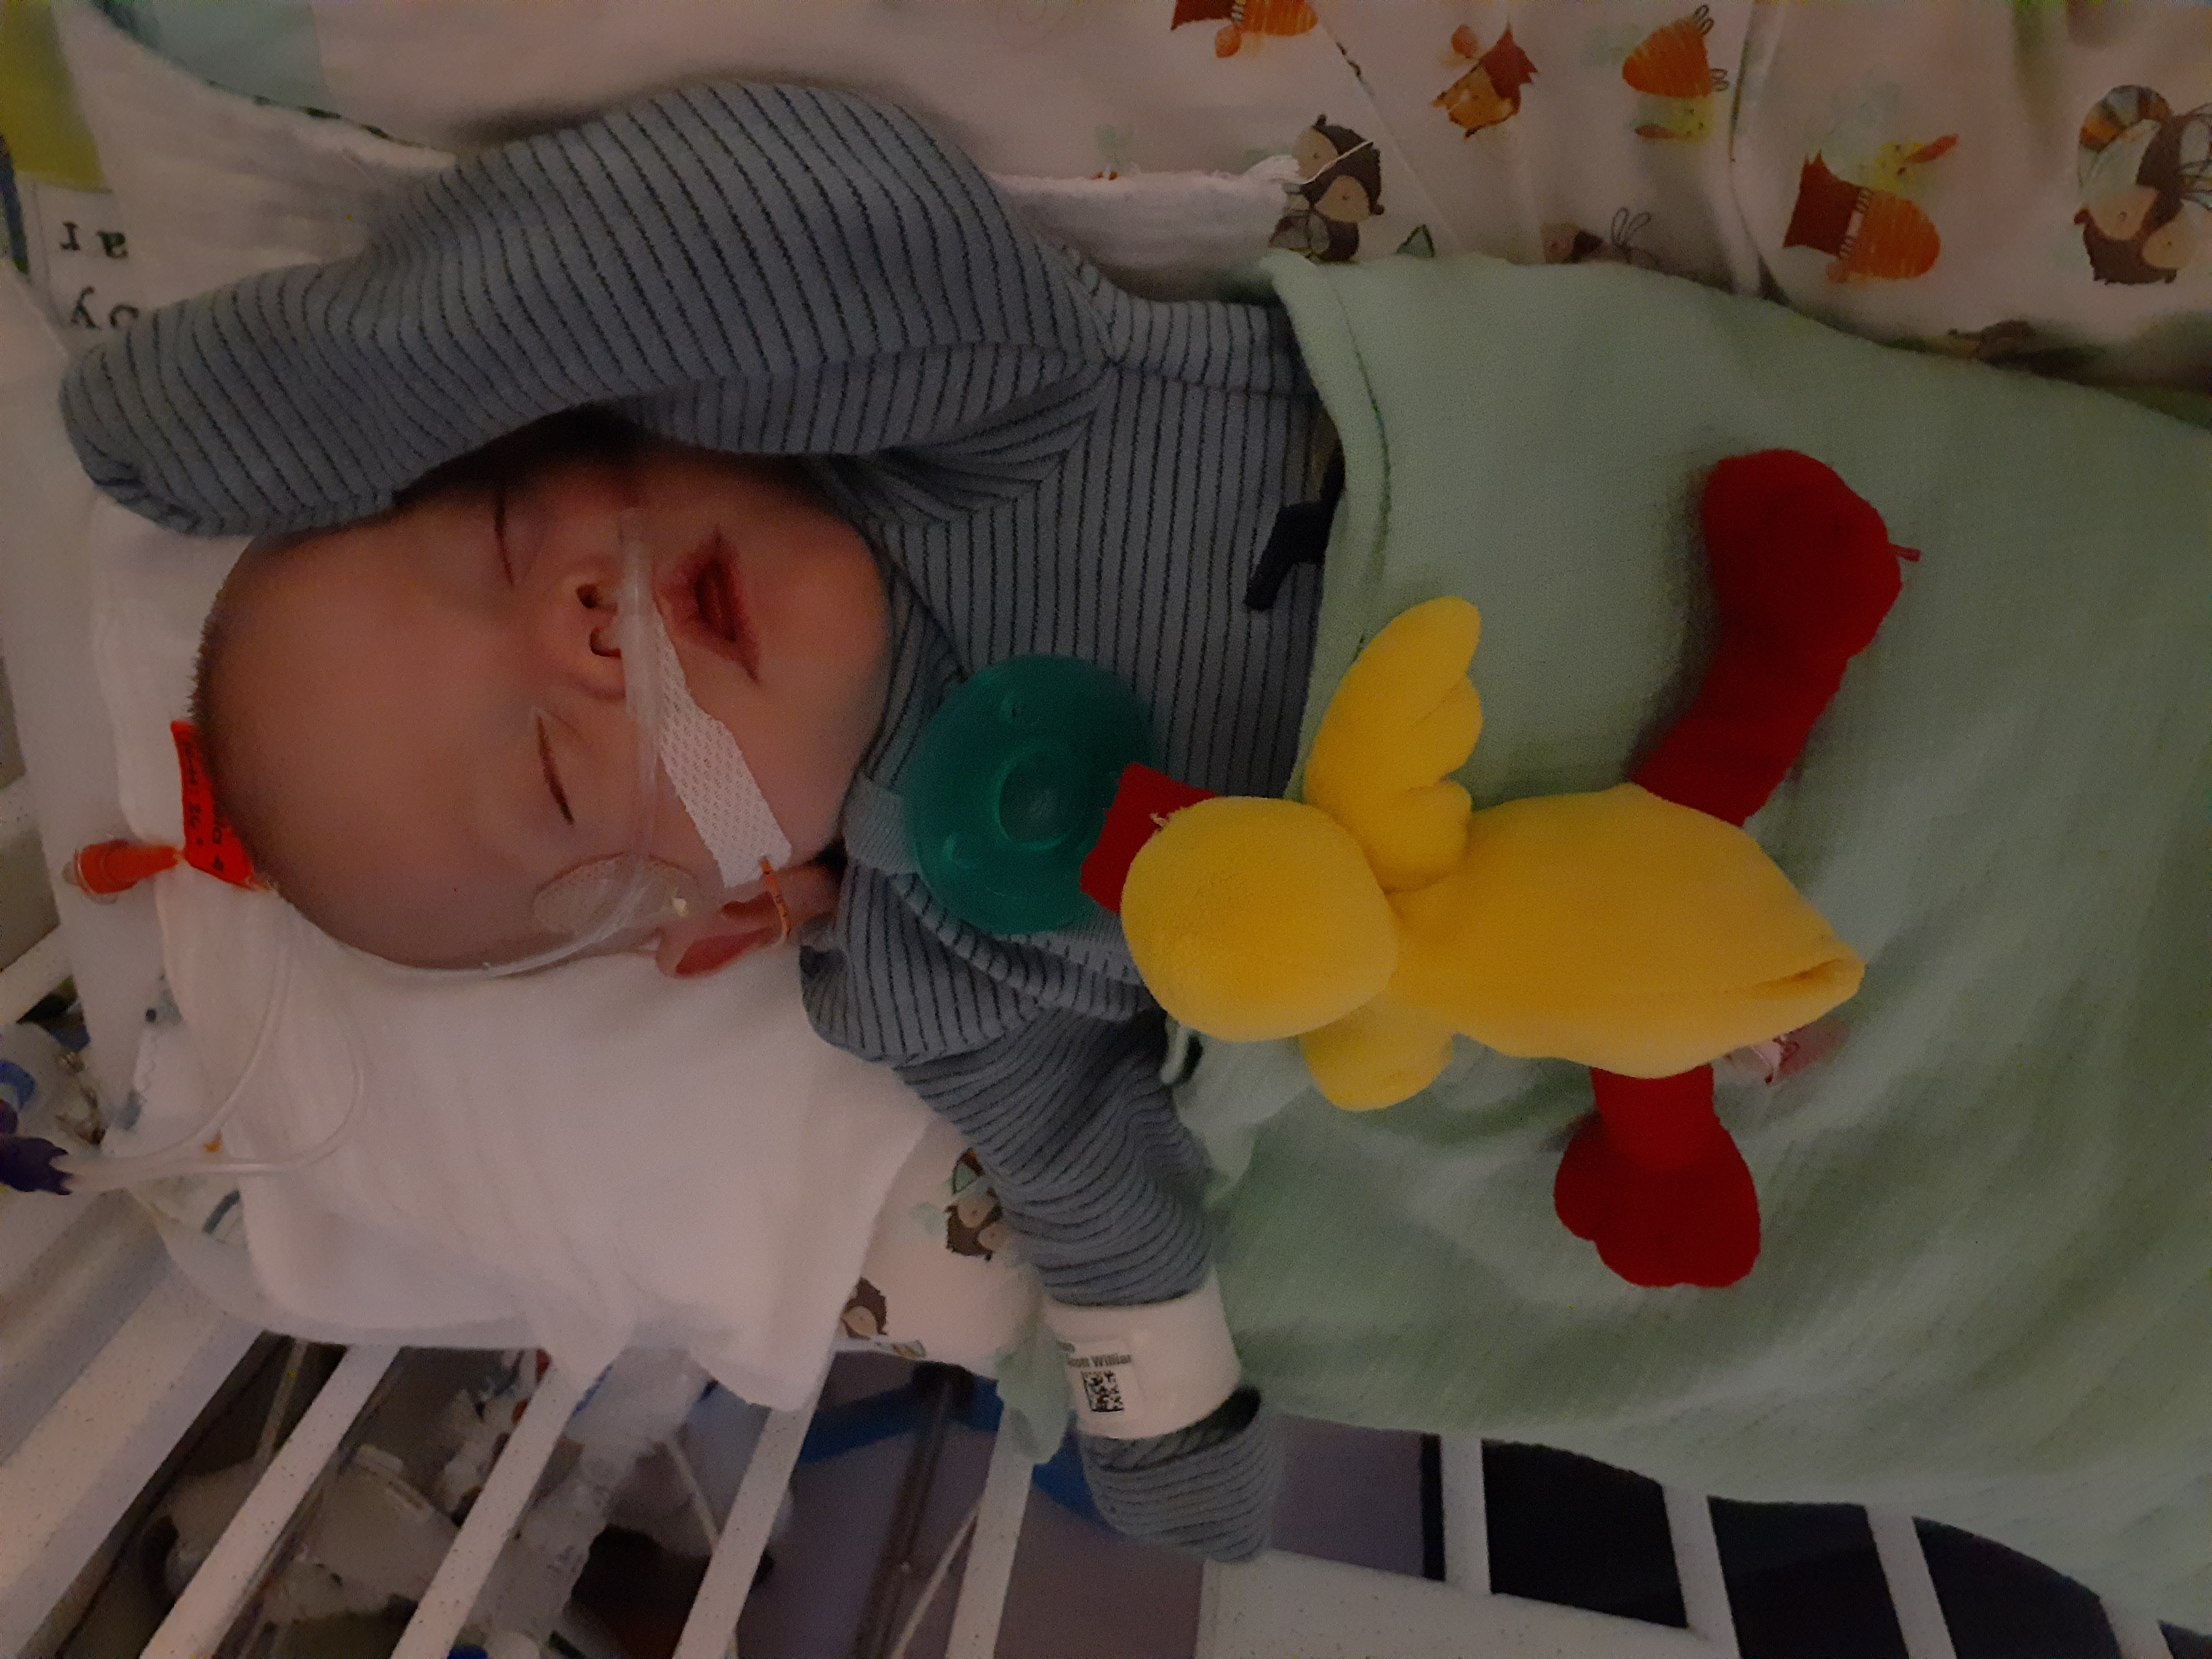 Baby Richard fighting for his life within the Minneapolis NICU.